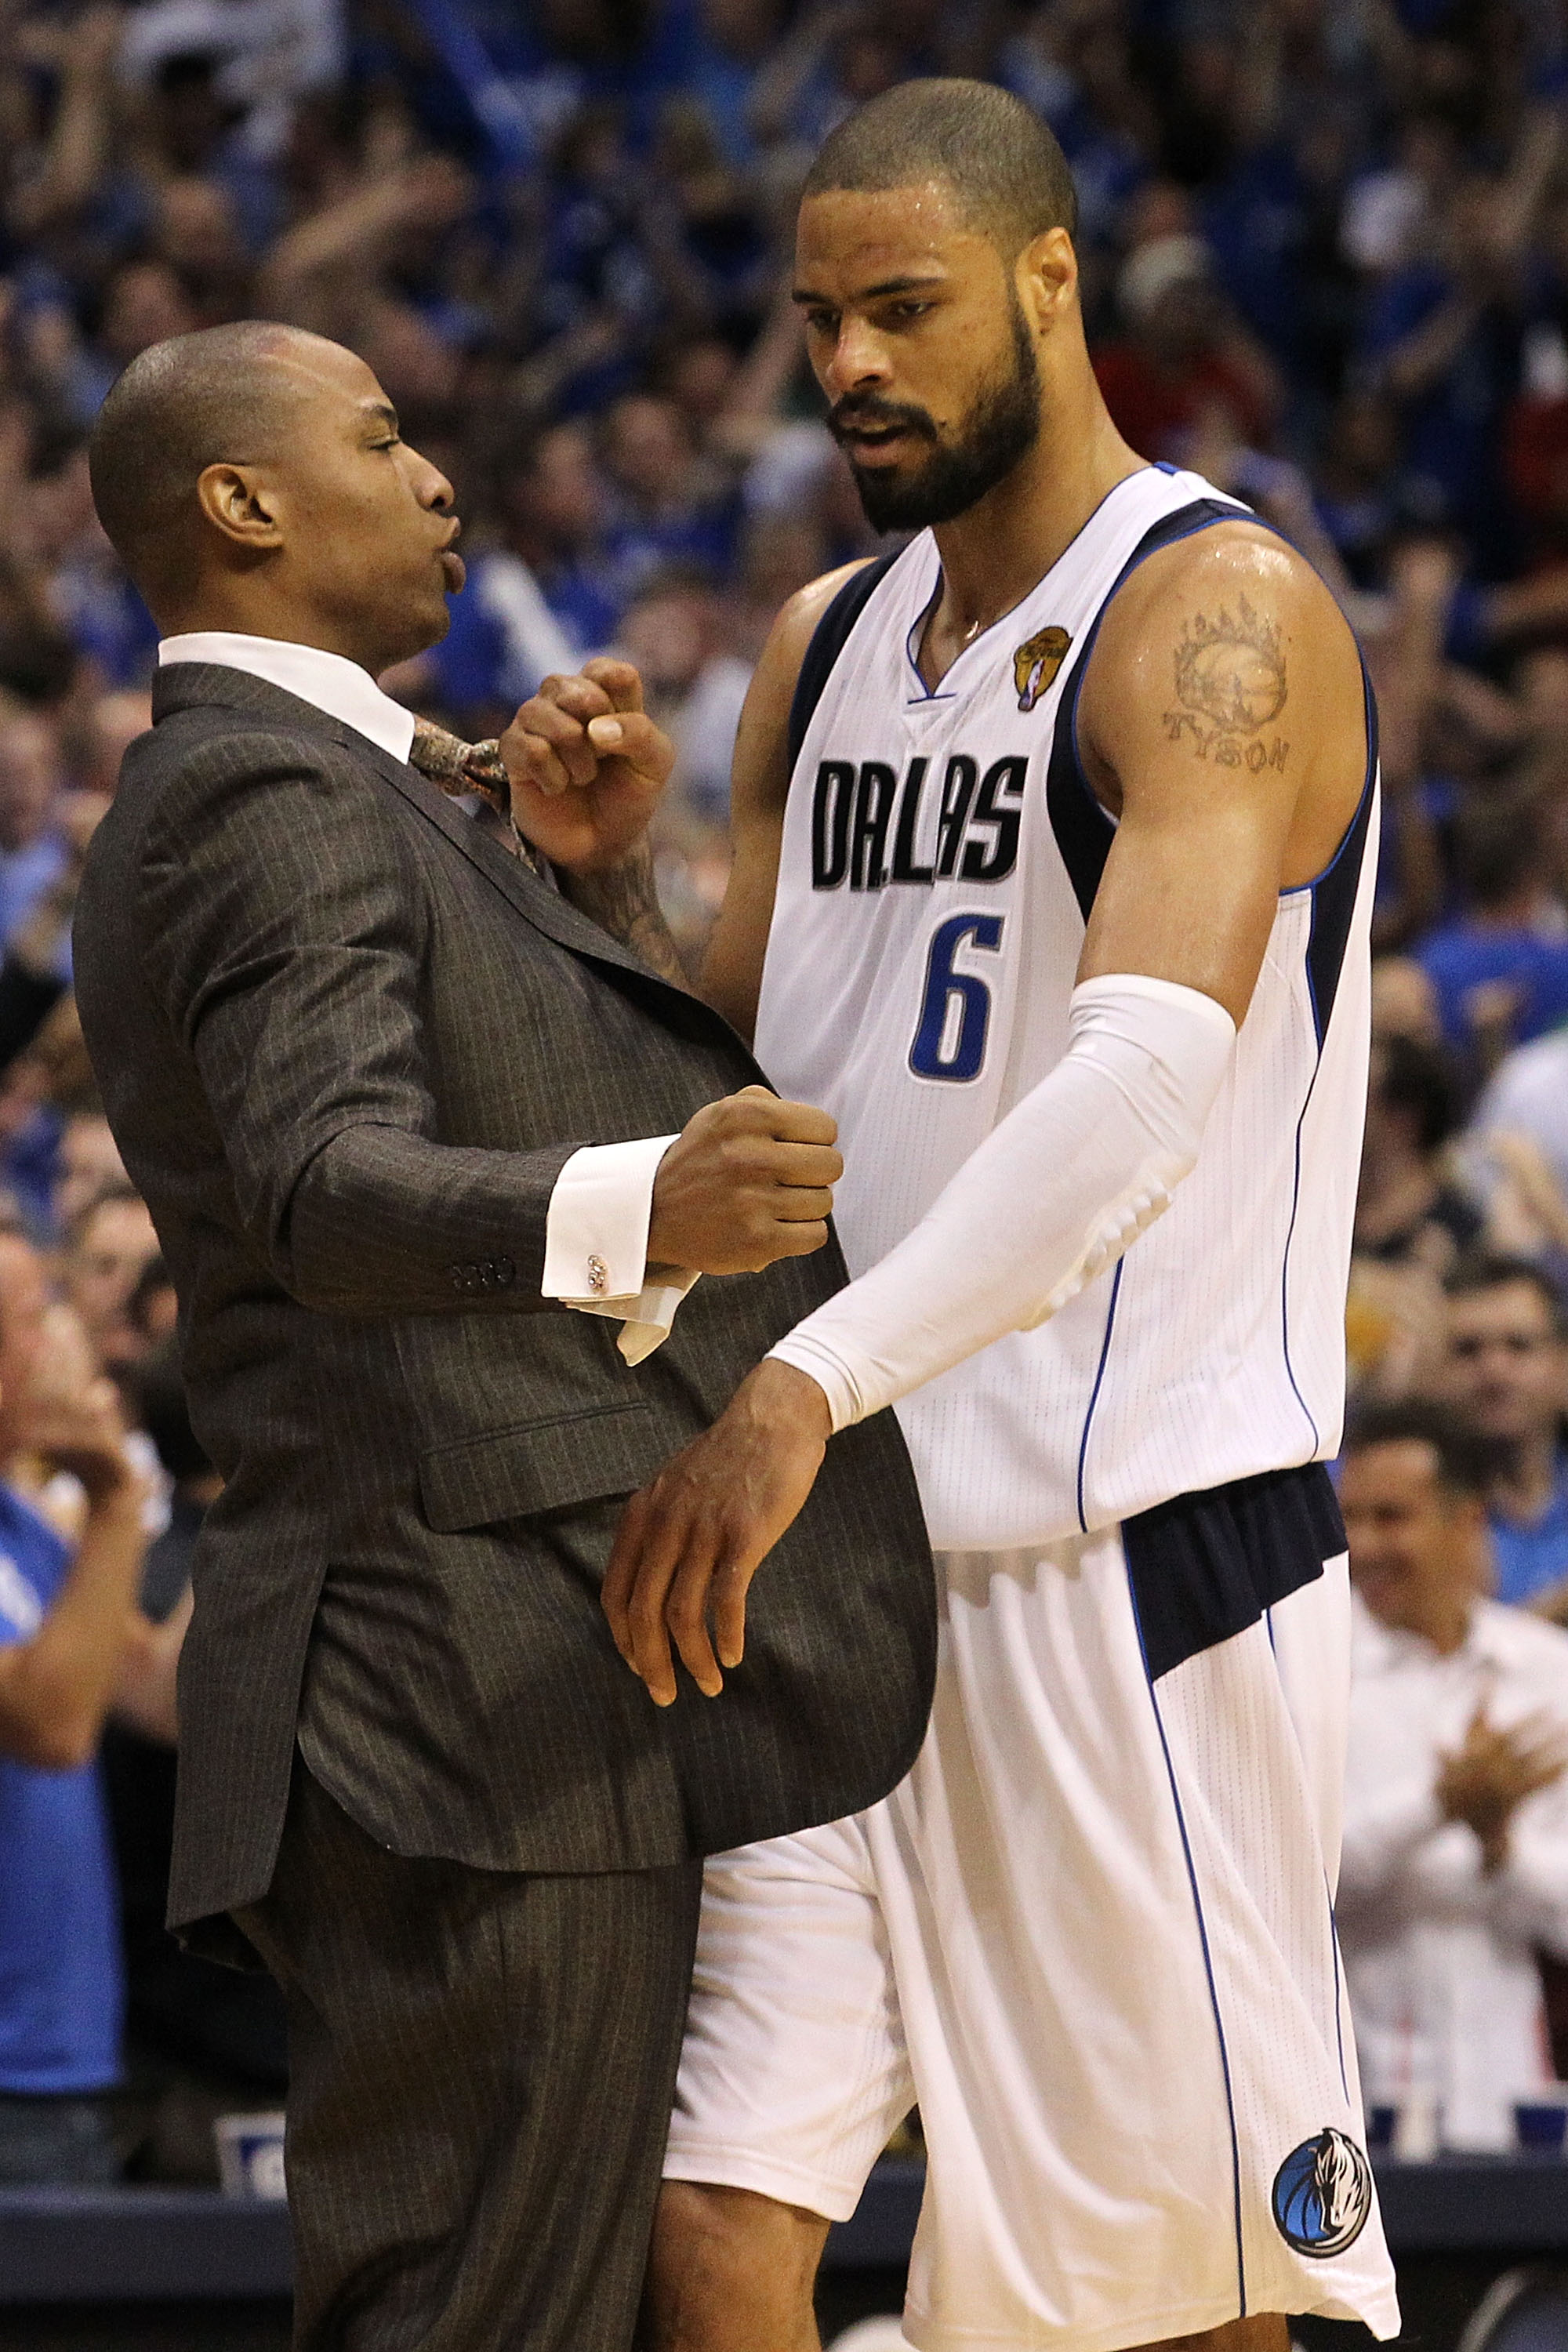 Caron Butler and Tyson Chandler are two free agents who will be highly coveted during the free-agency period